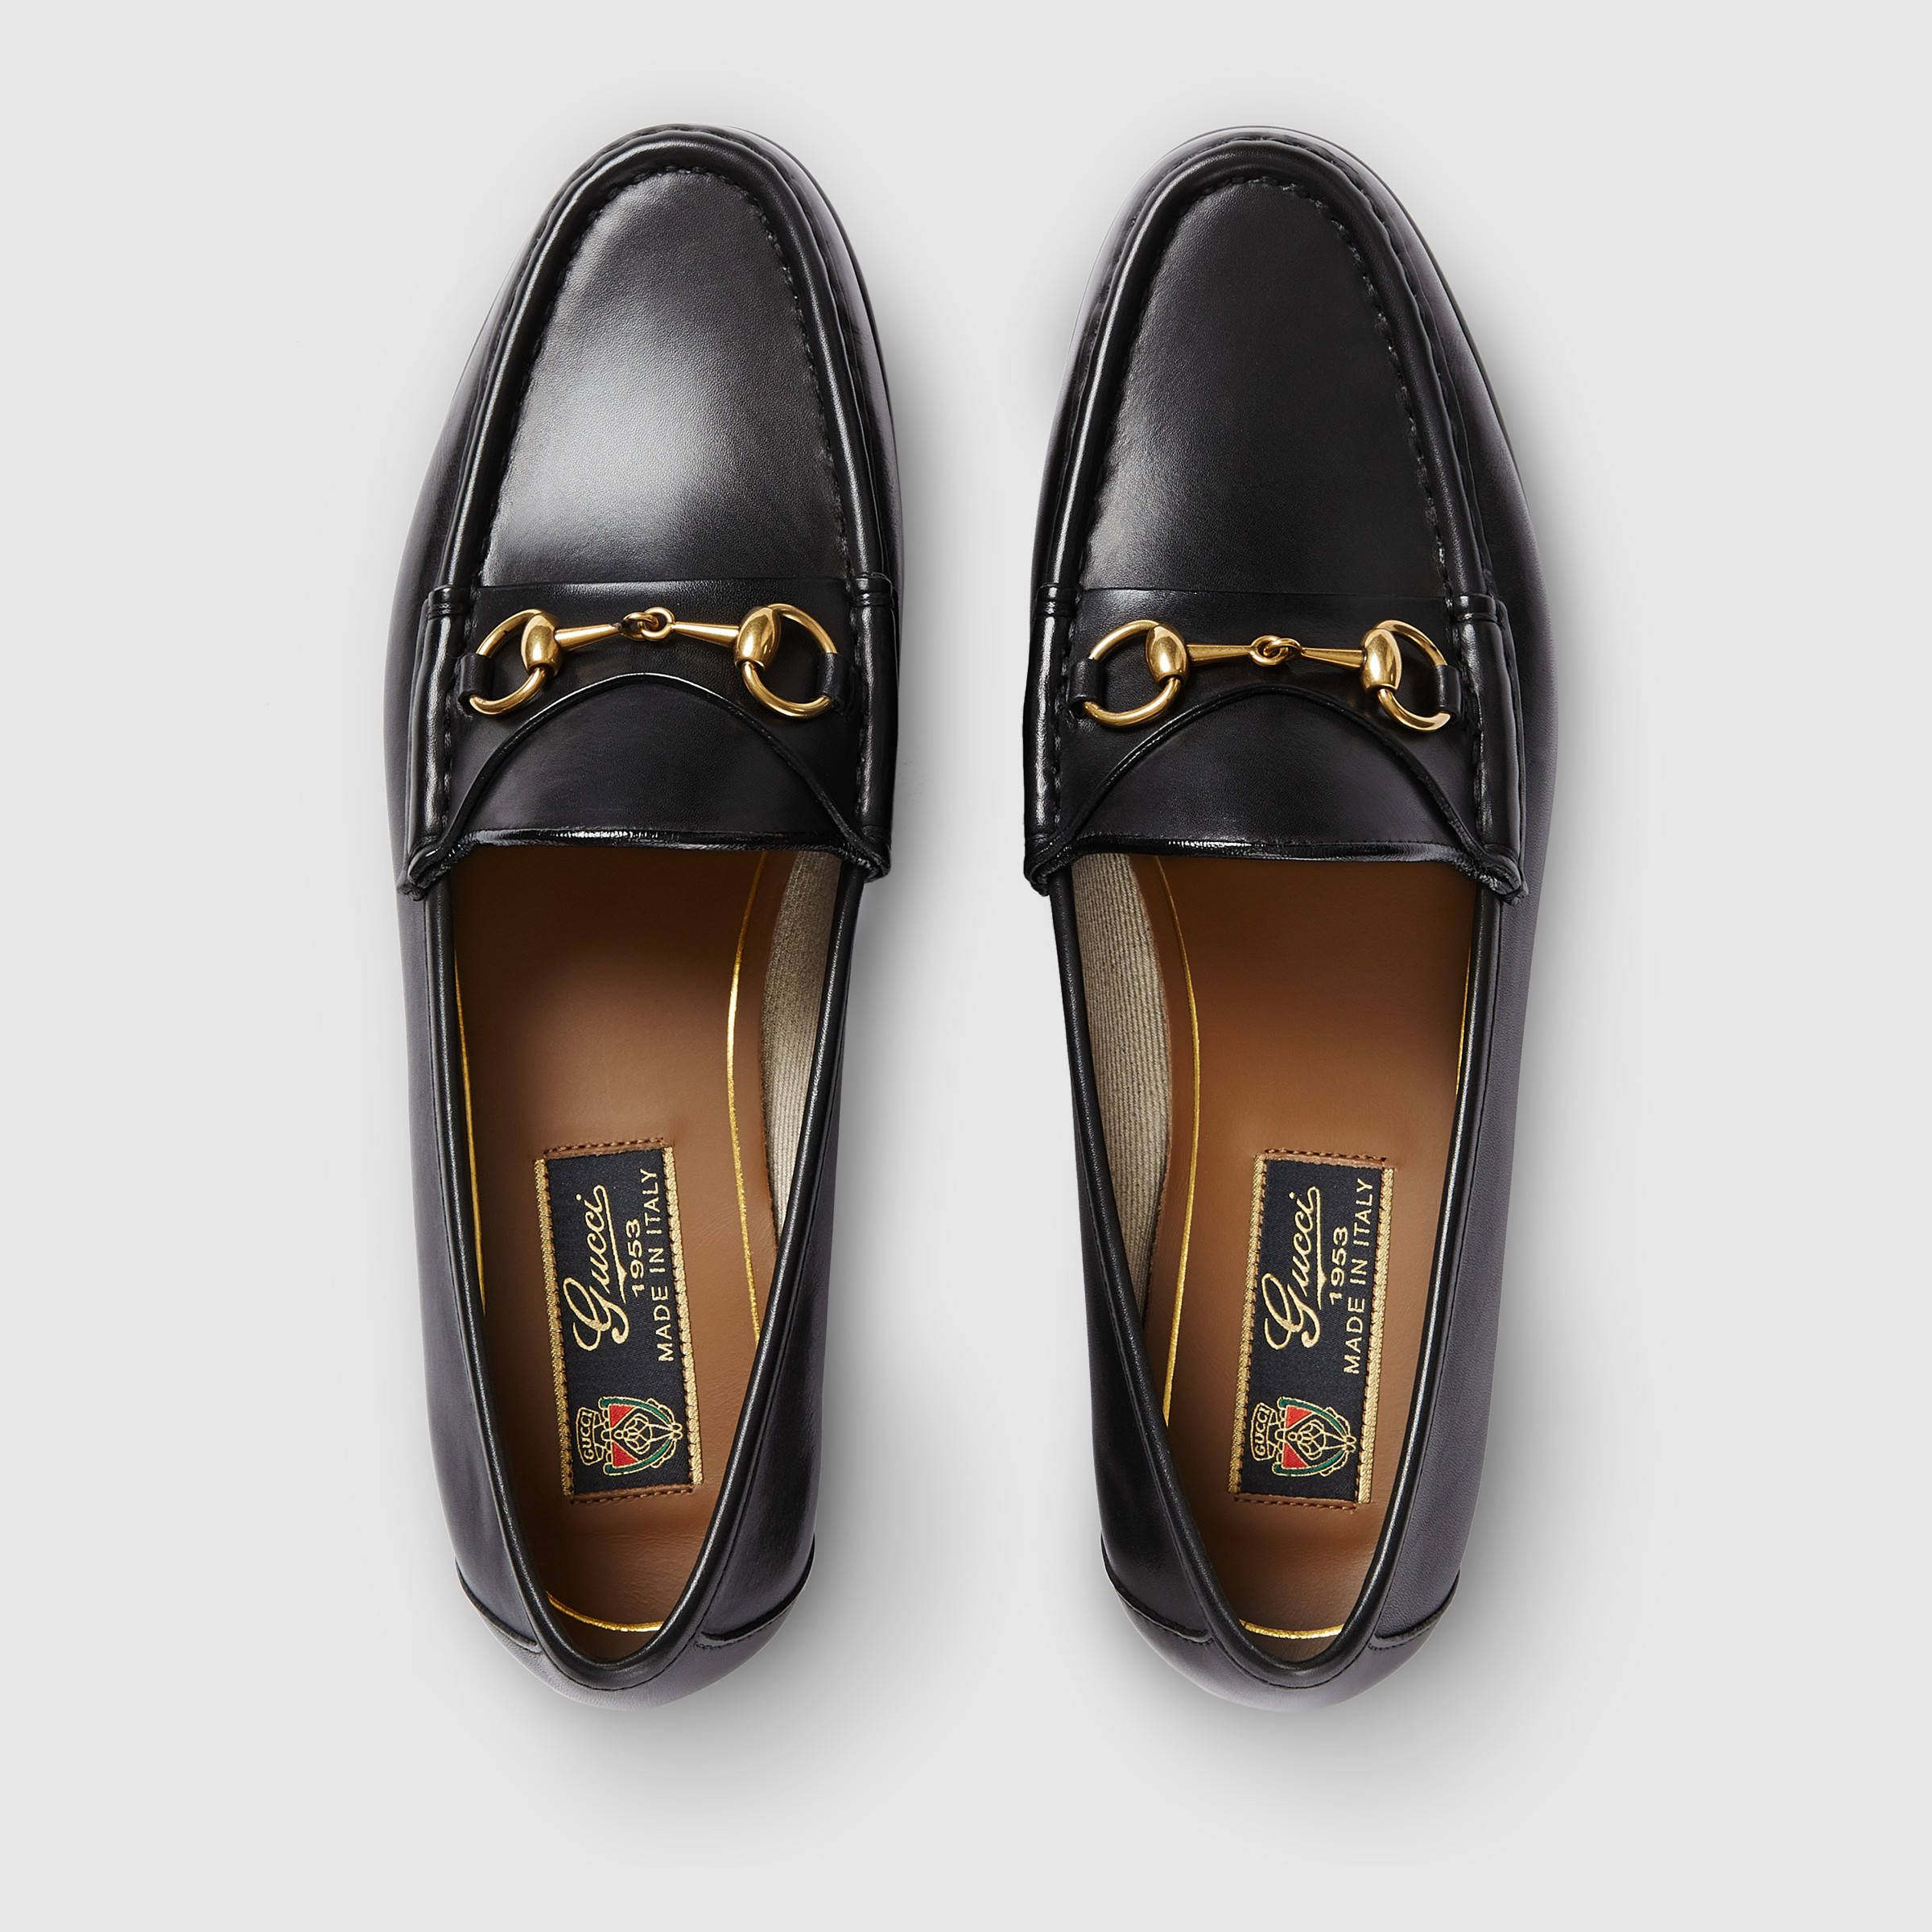 mocassin 1953 gucci loafers shoes pinterest gucci loafers gucci and gucci shoes. Black Bedroom Furniture Sets. Home Design Ideas